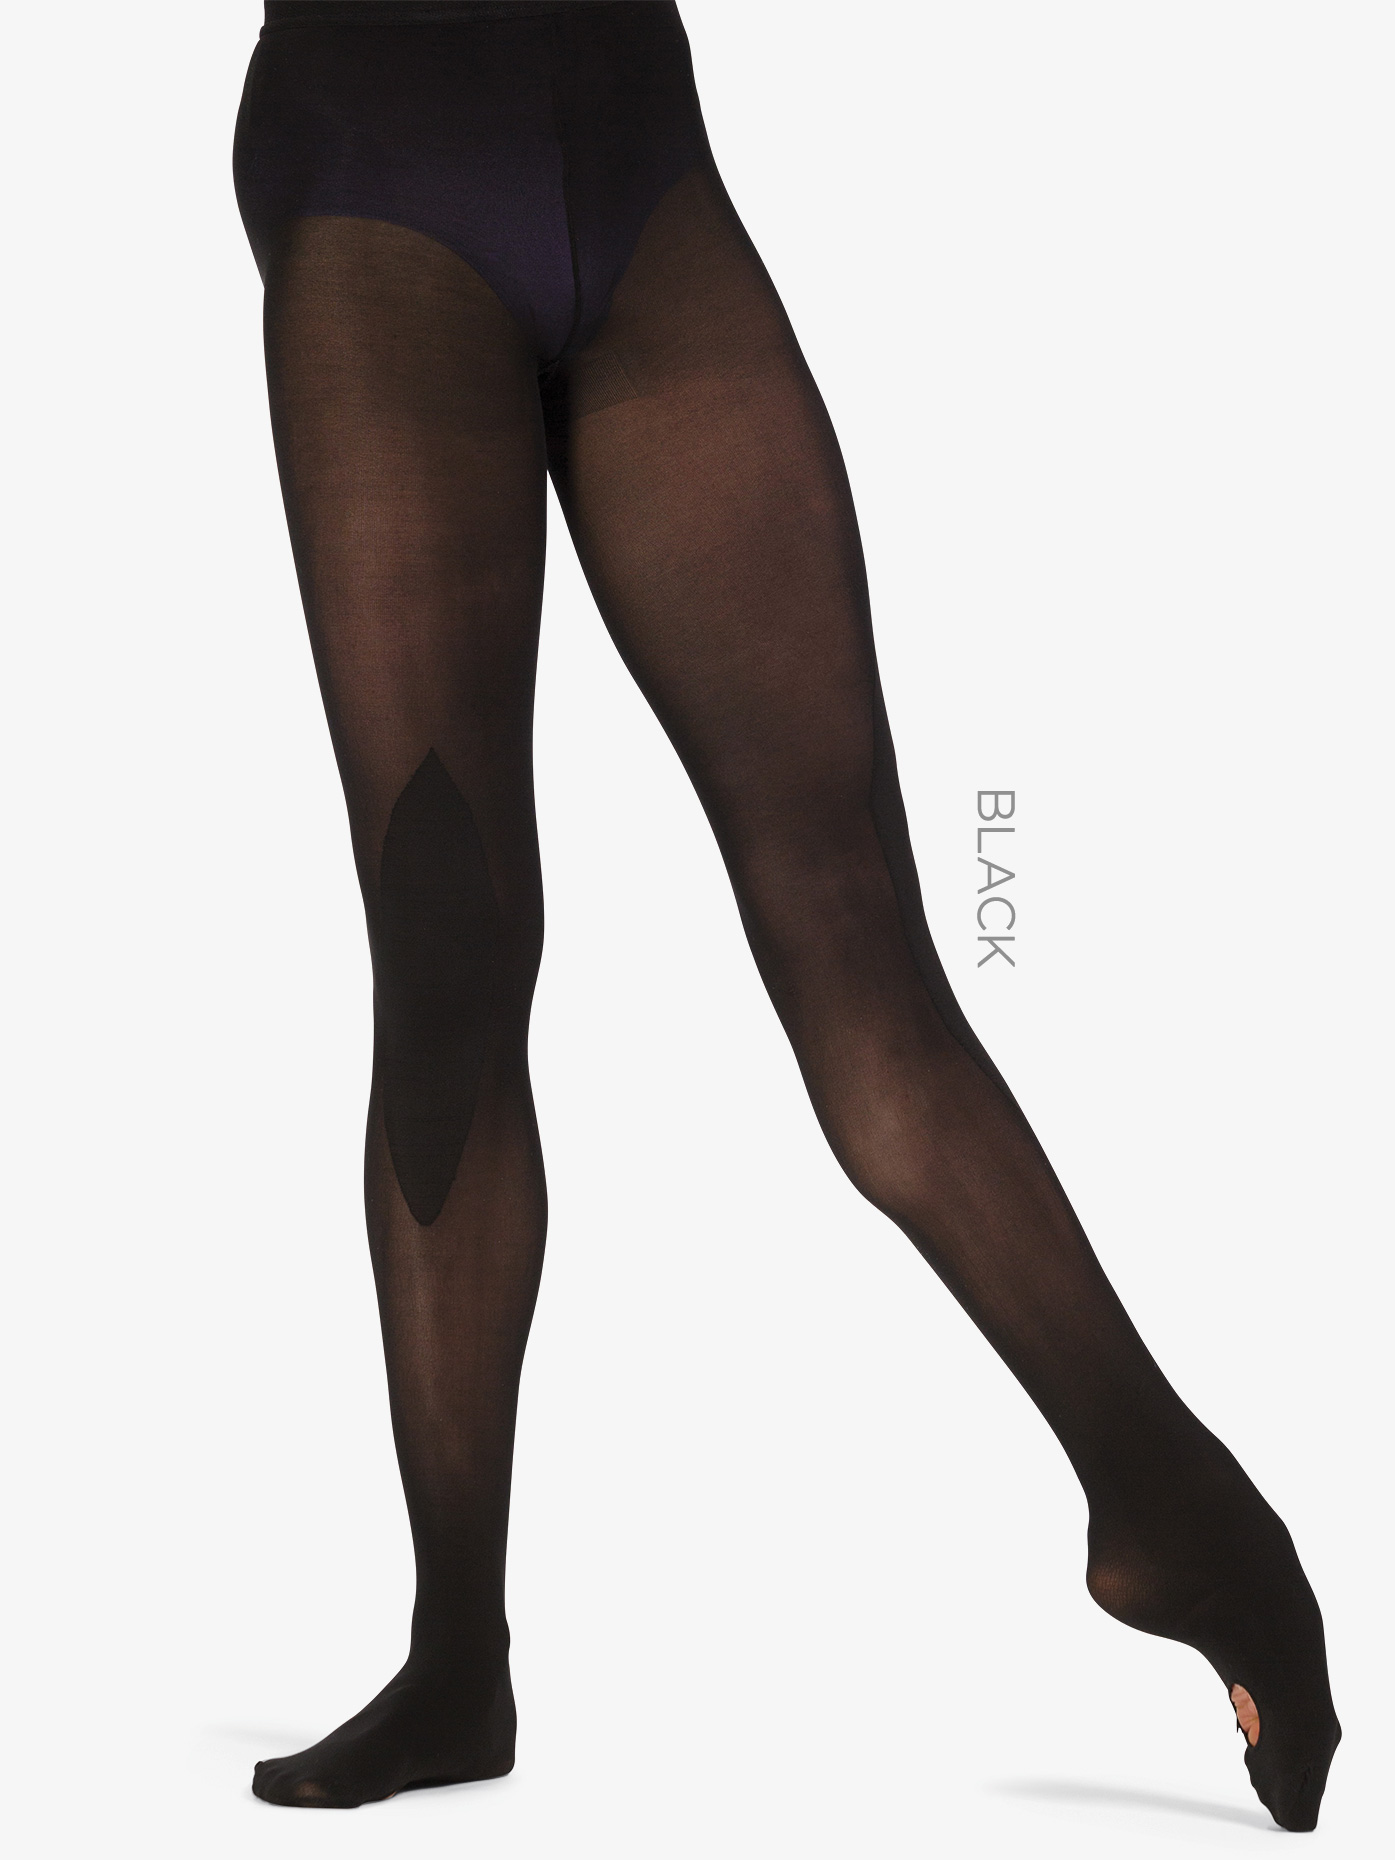 Zarely Womens Rehearsal Convertible Tights Z1